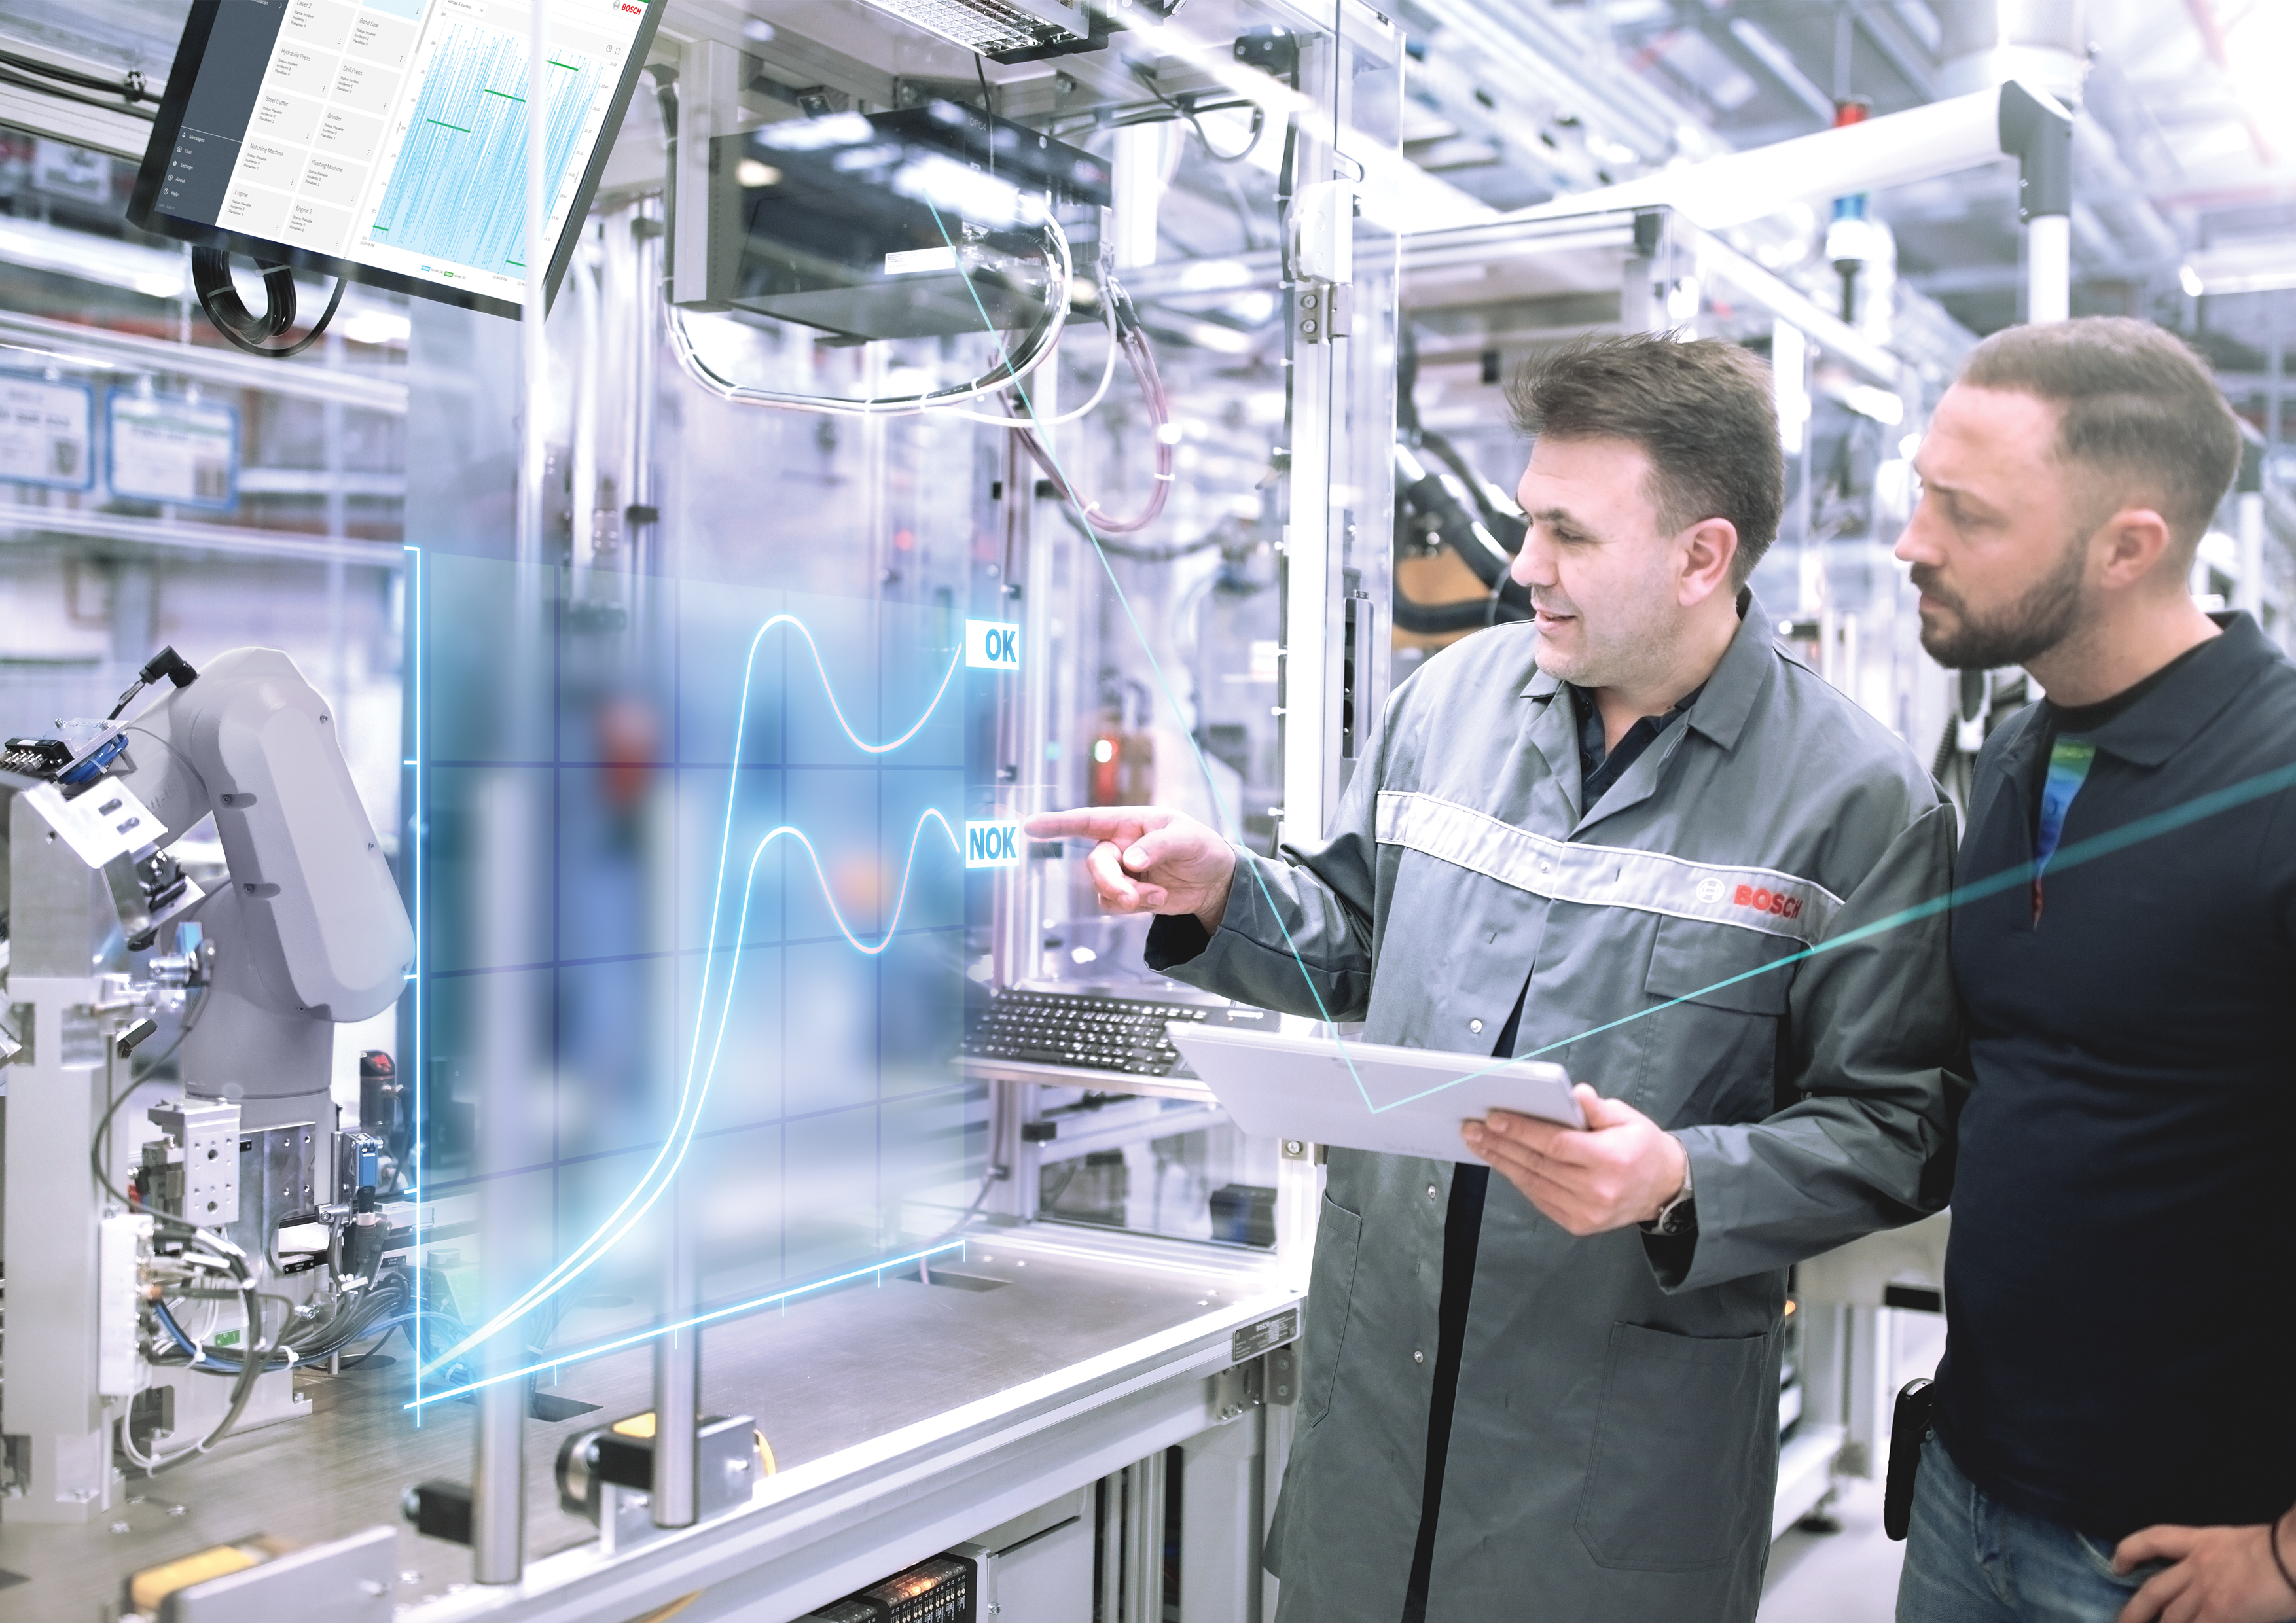 Bosch opens its factory gates: with Industry 4.0 guided tours